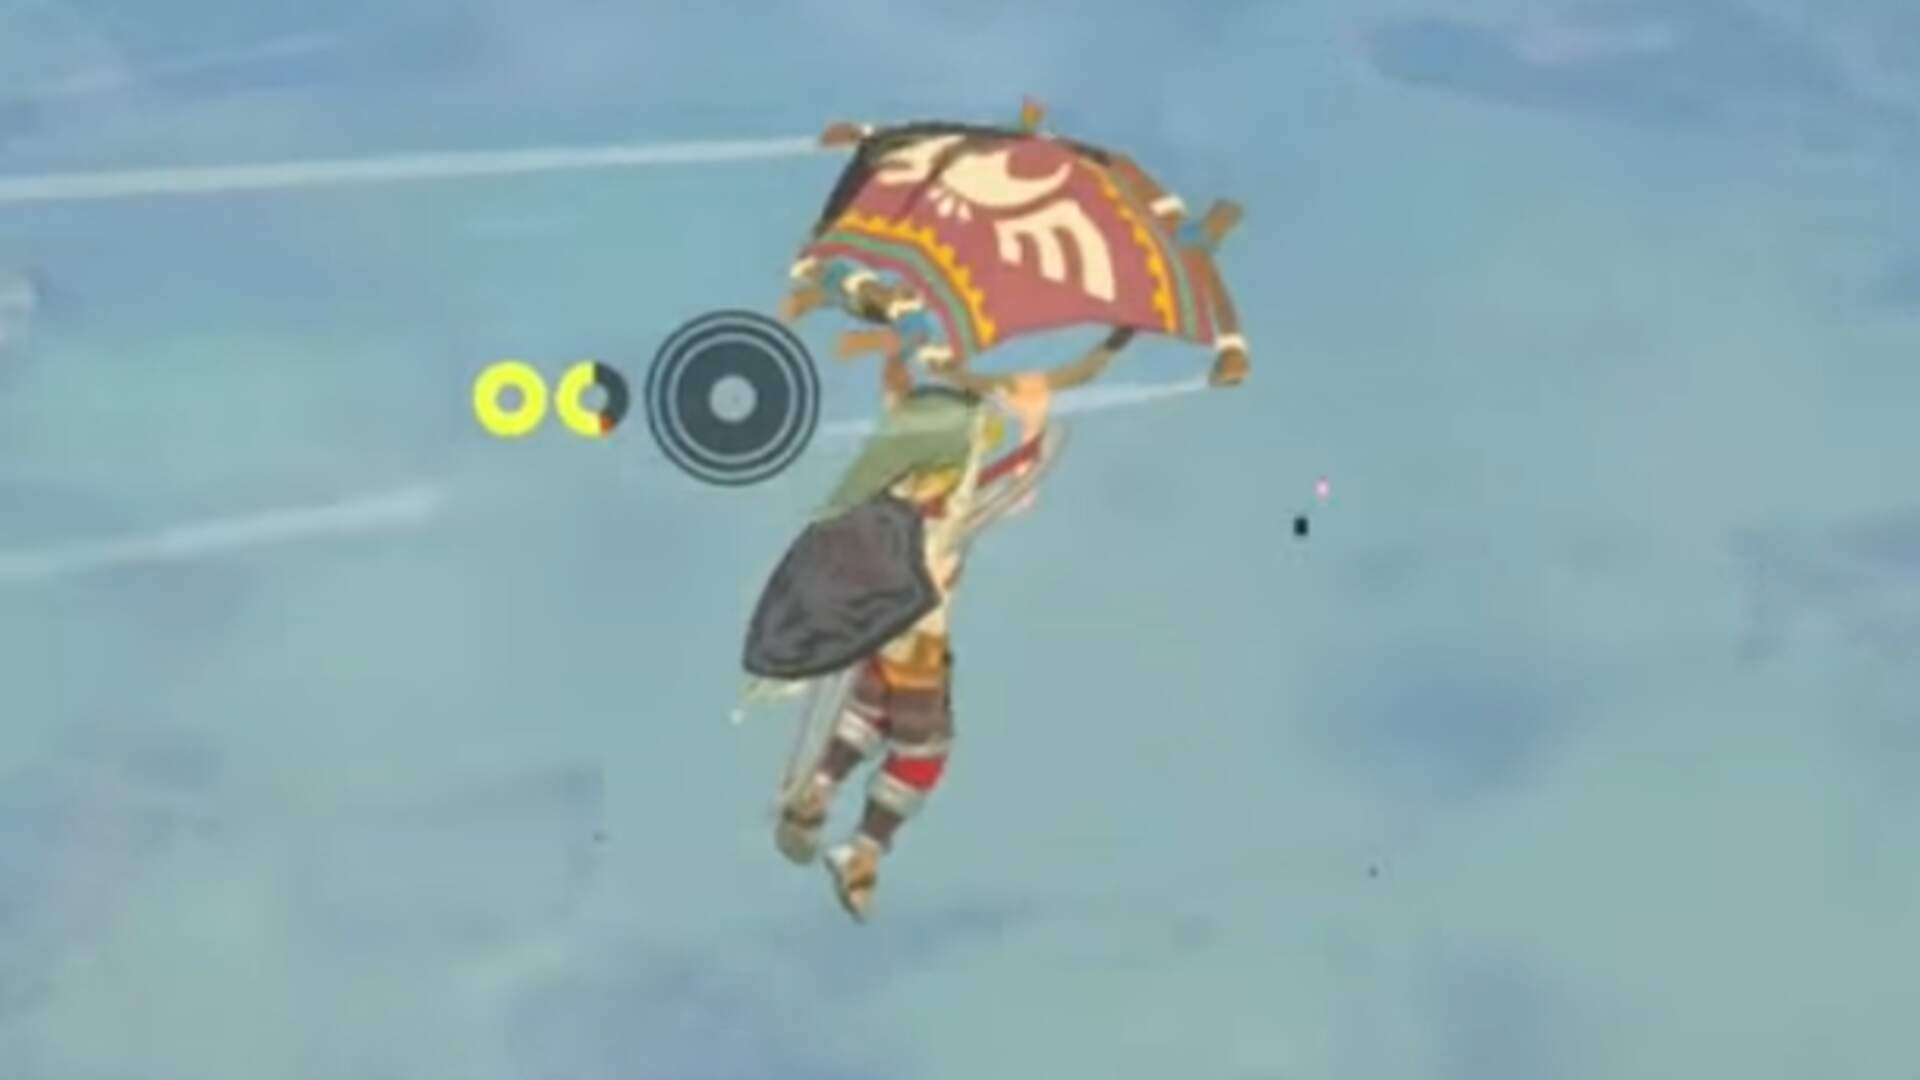 Zelda Breath of the Wild Player Flies Across Hyrule Via the Power of Magnets